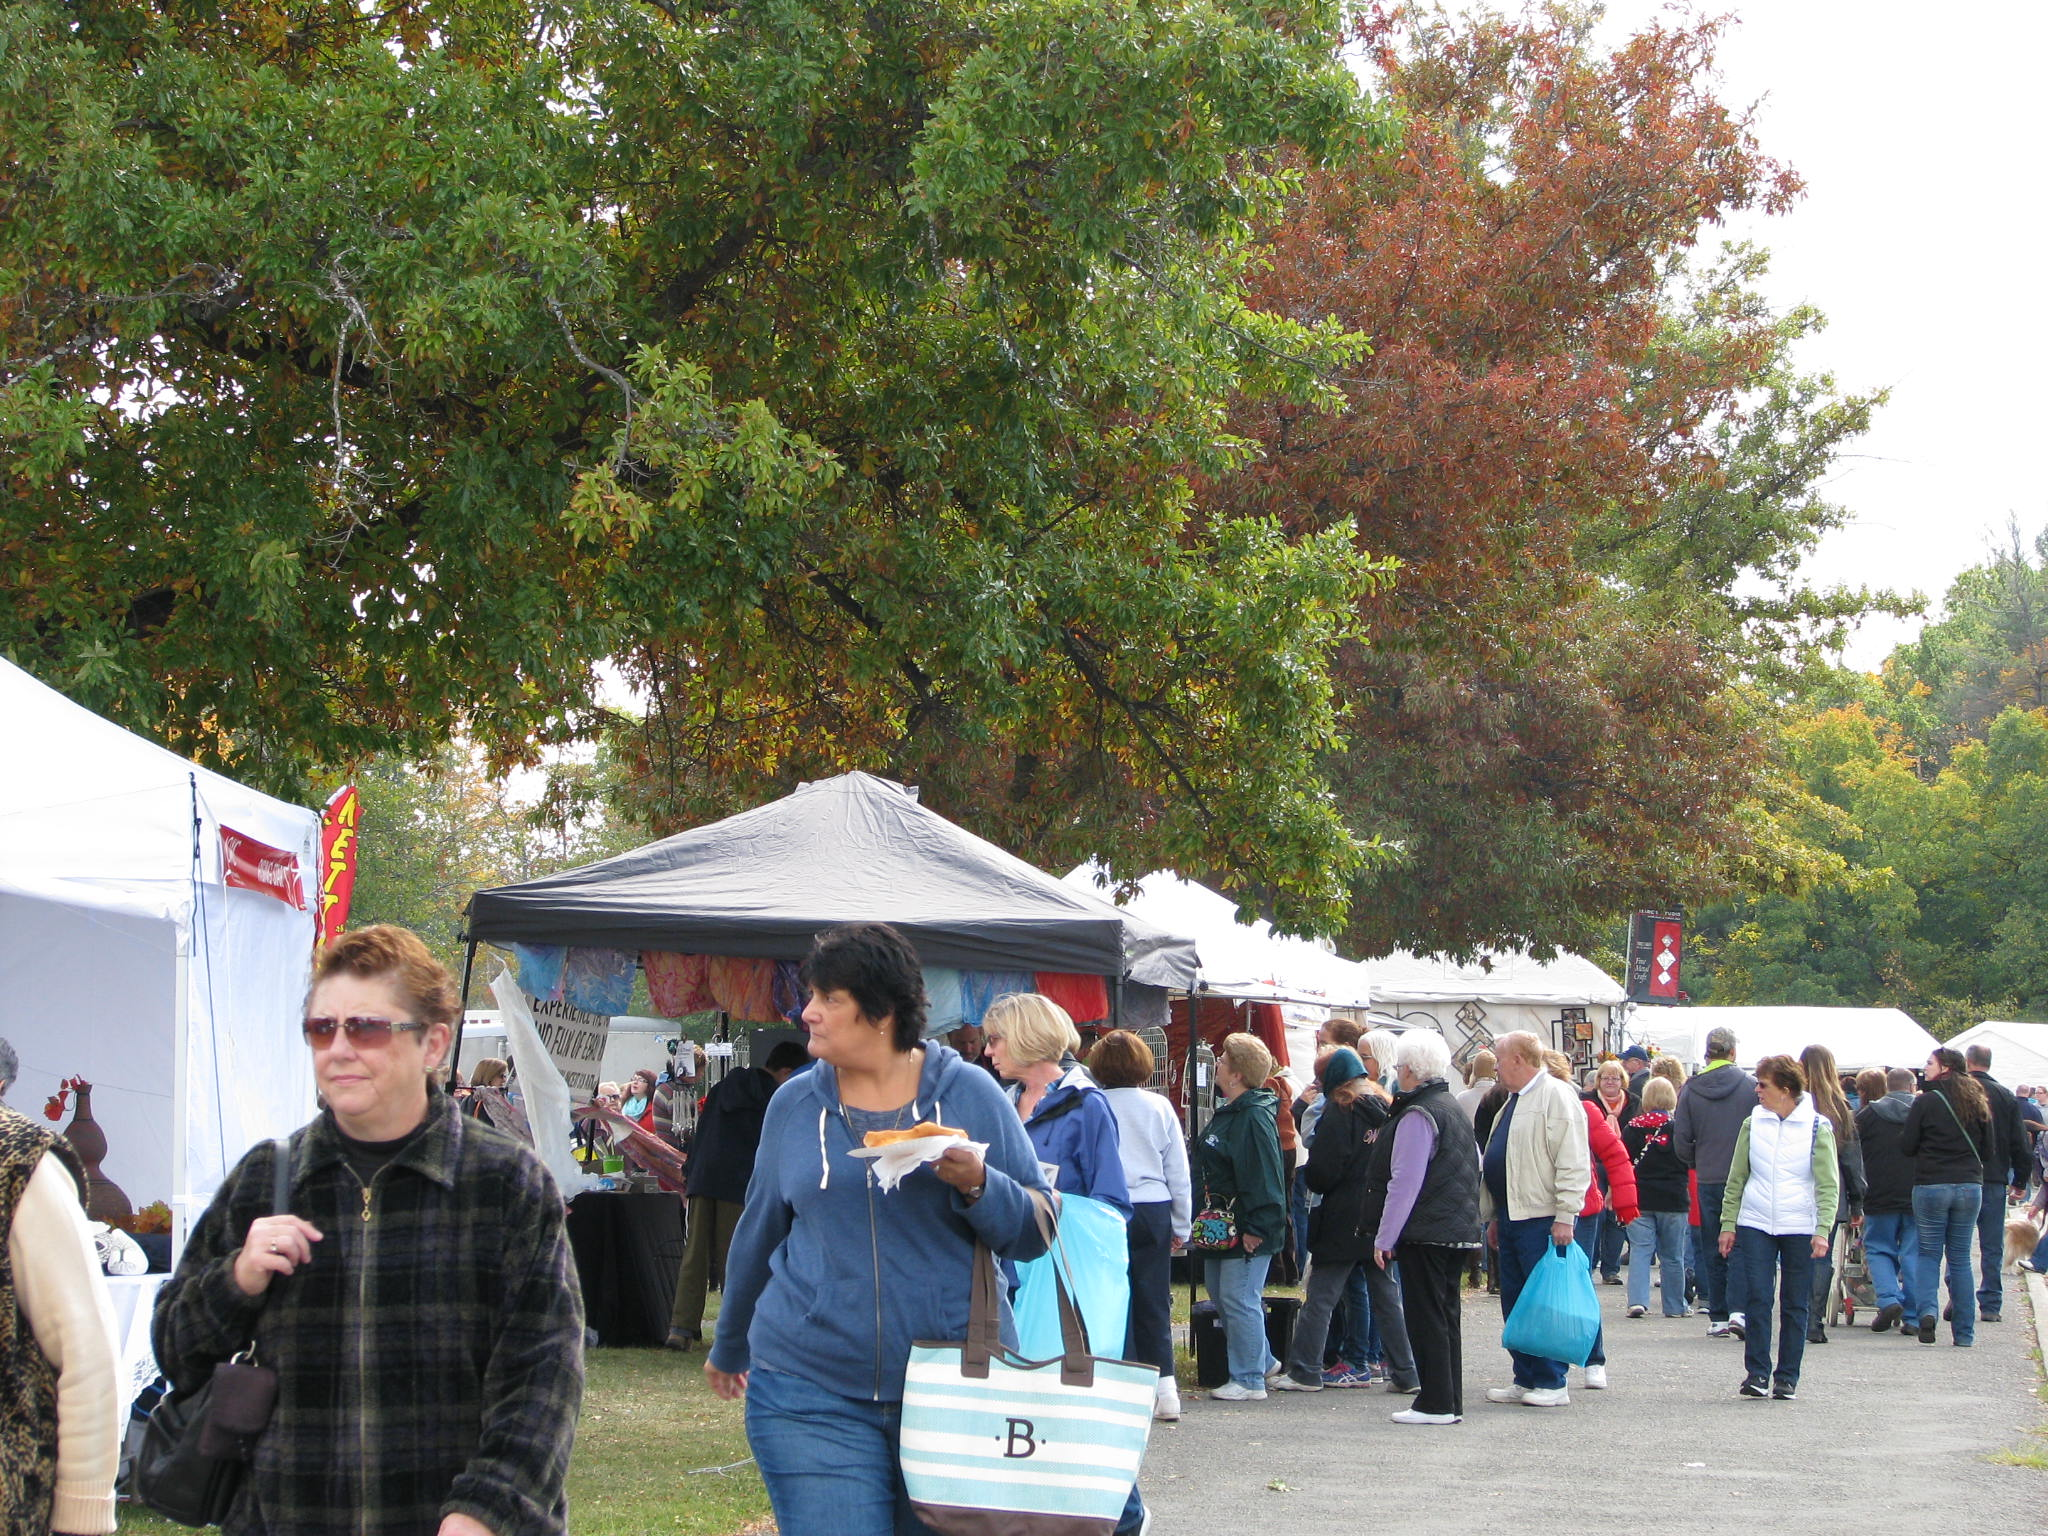 LETCHWORTH ARTS AND CRAFTS SHOW IS A SIGNATURE EVENT PRESENTED BY THE ACWC.  IT ATTRACTS BETWEEN 60 -90,000 PEOPLE EACH YEAR.JPG